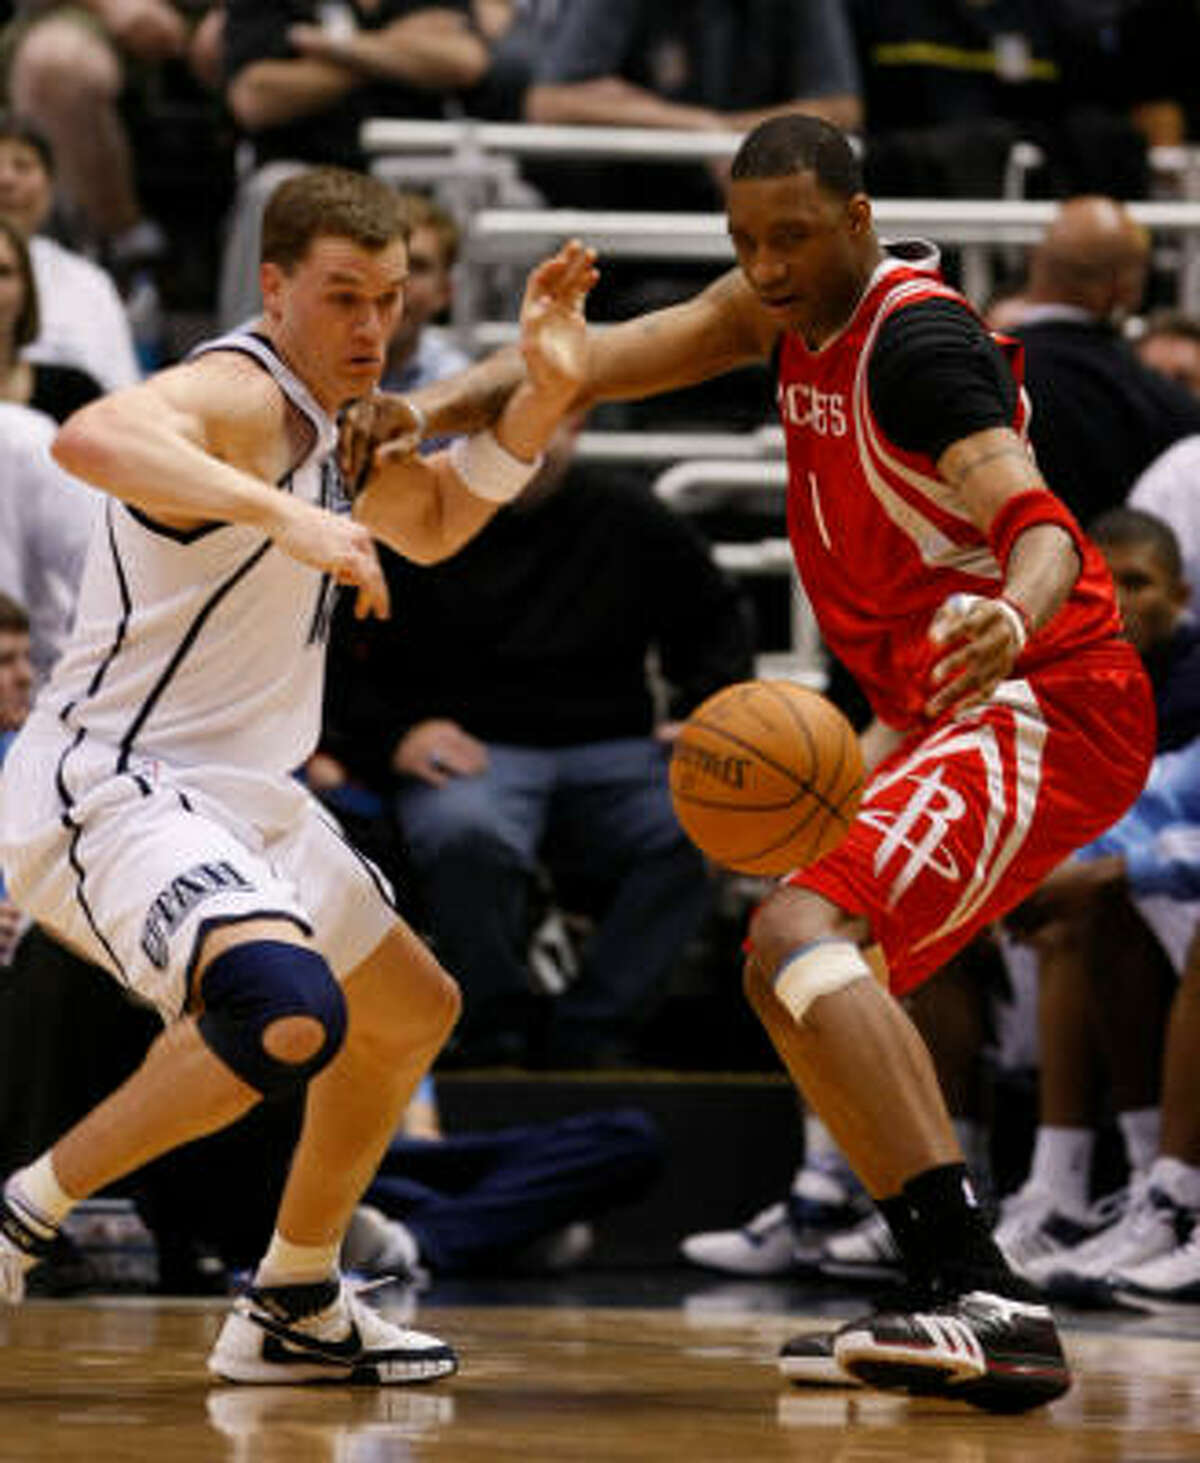 Jazz forward Matt Harpring, left, steals the ball from Rockets guard Tracy McGrady in the fourth quarter of Game 4.